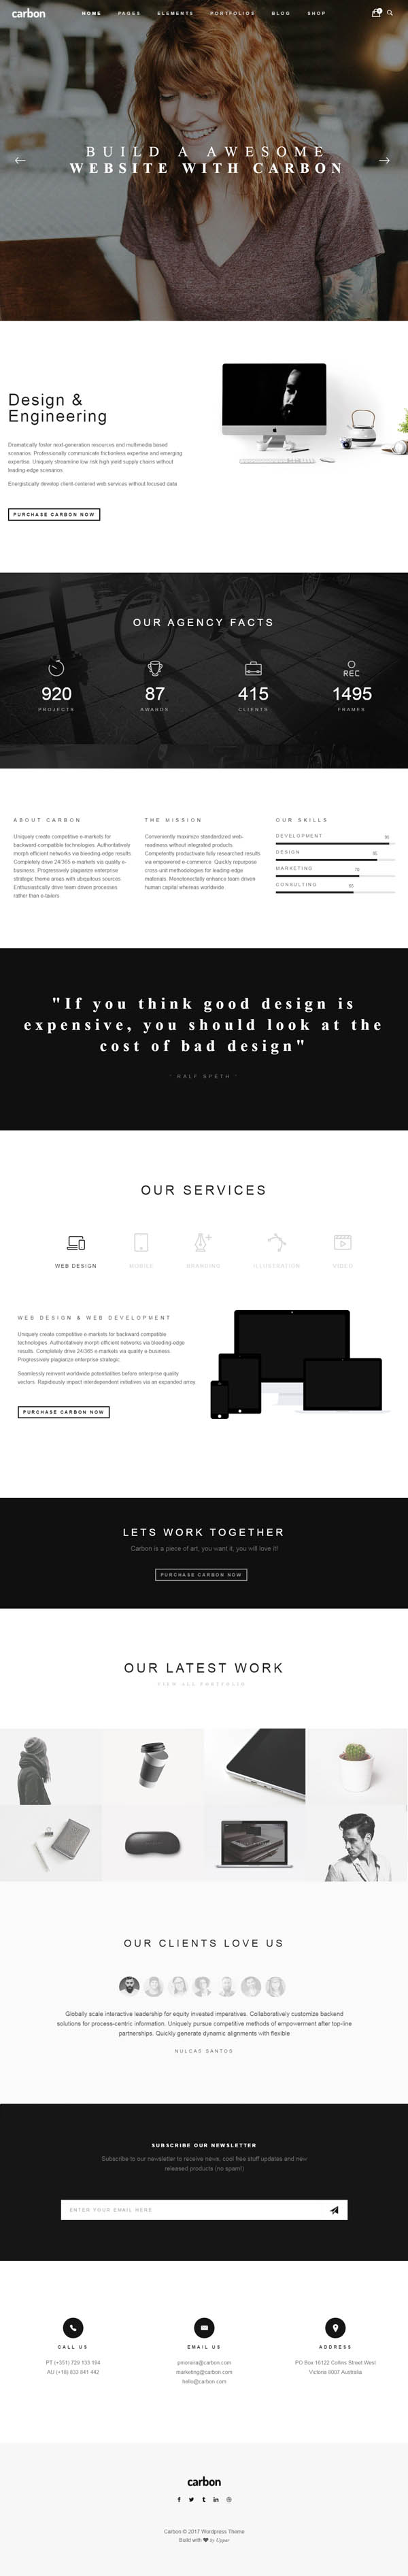 Carbon : Clean Minimal Multipurpose WordPress Theme